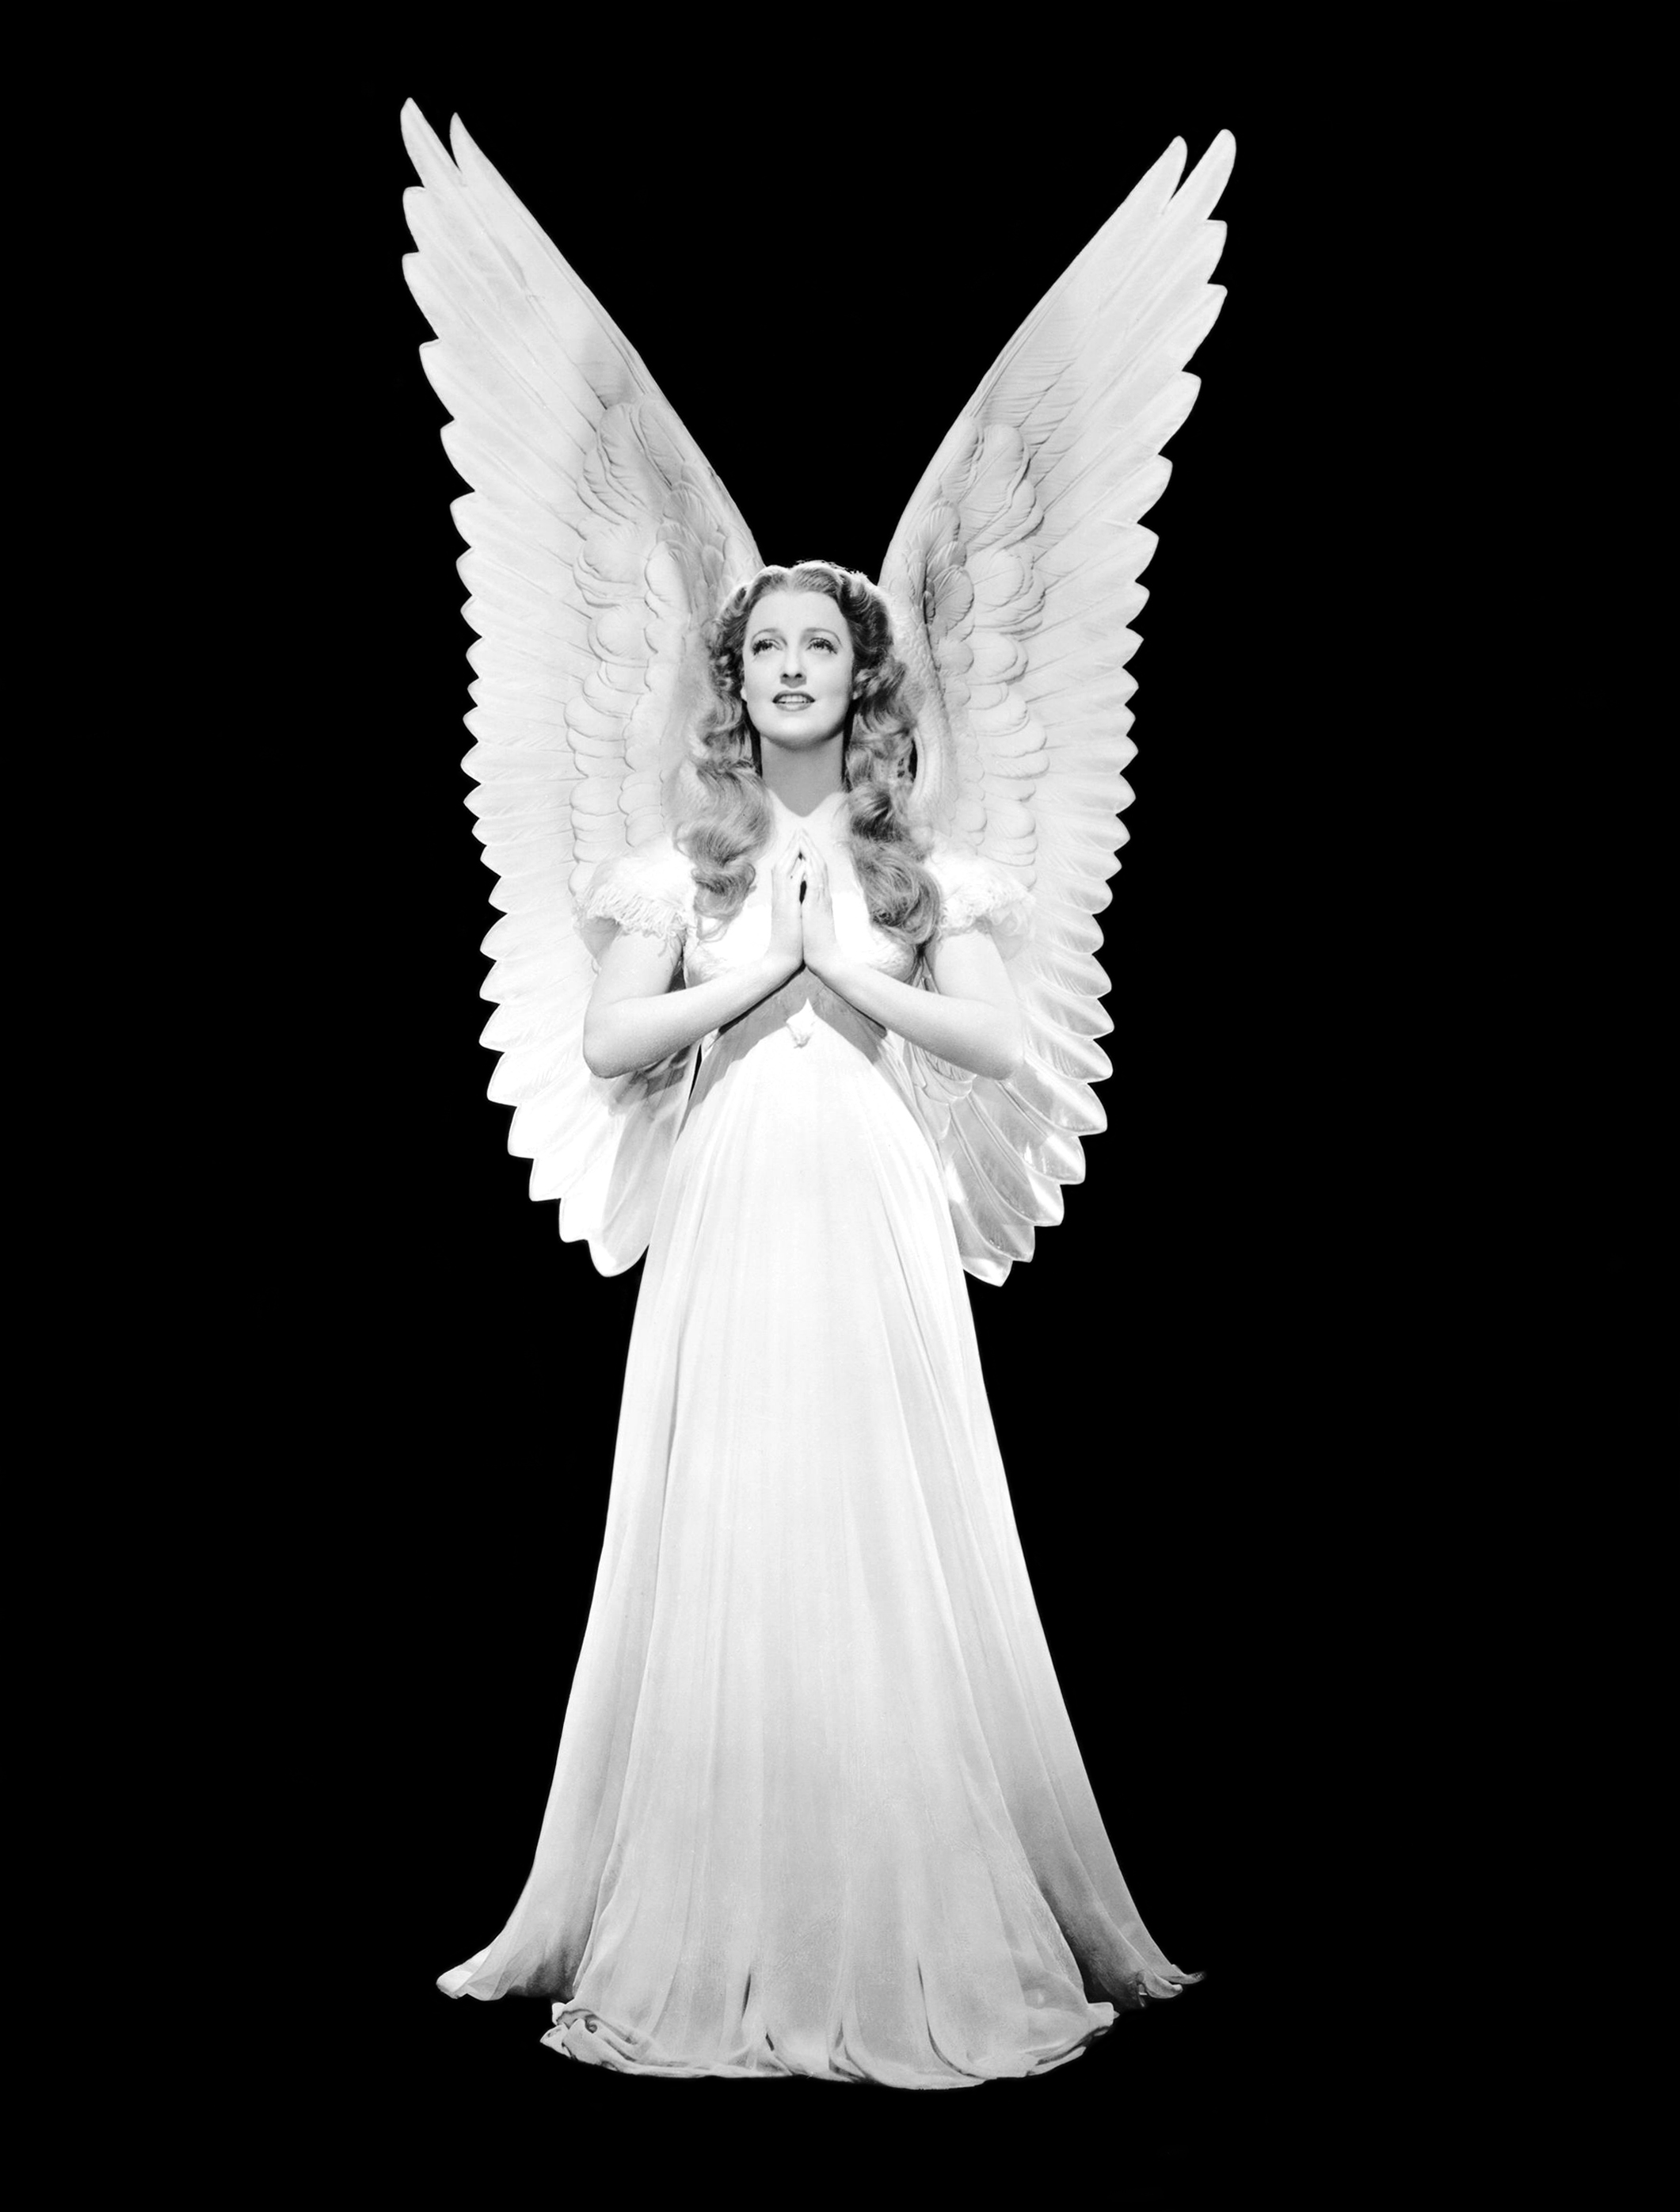 White Angel Model 513.48 Kb